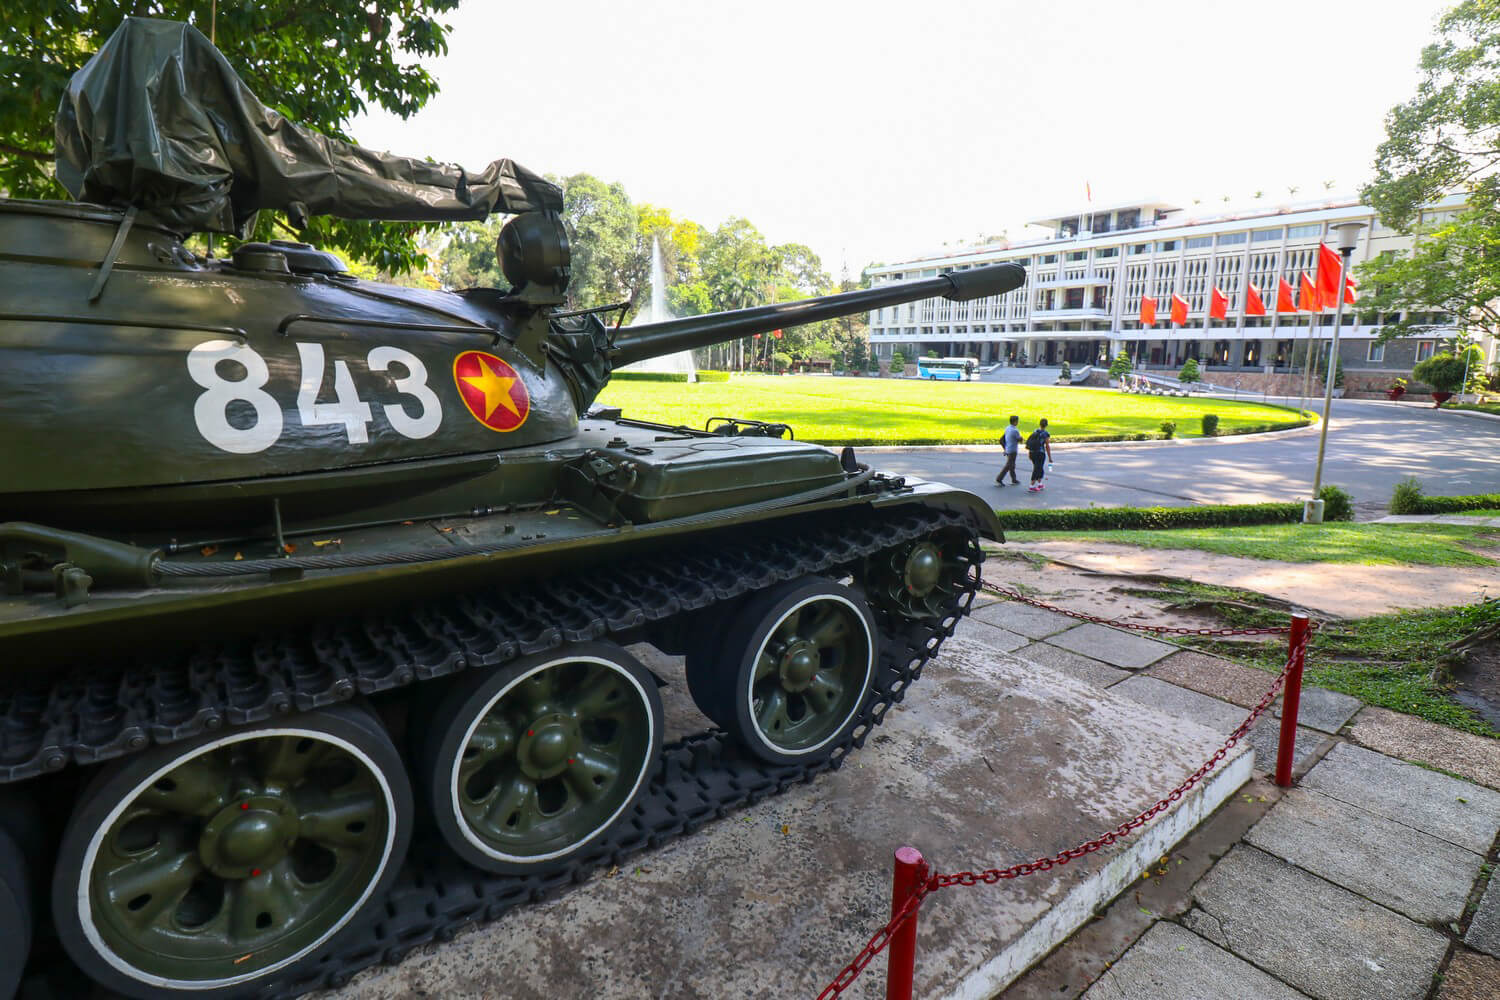 Tank at Vietnam War Sites Reunification Palace in Ho Chi Minh City